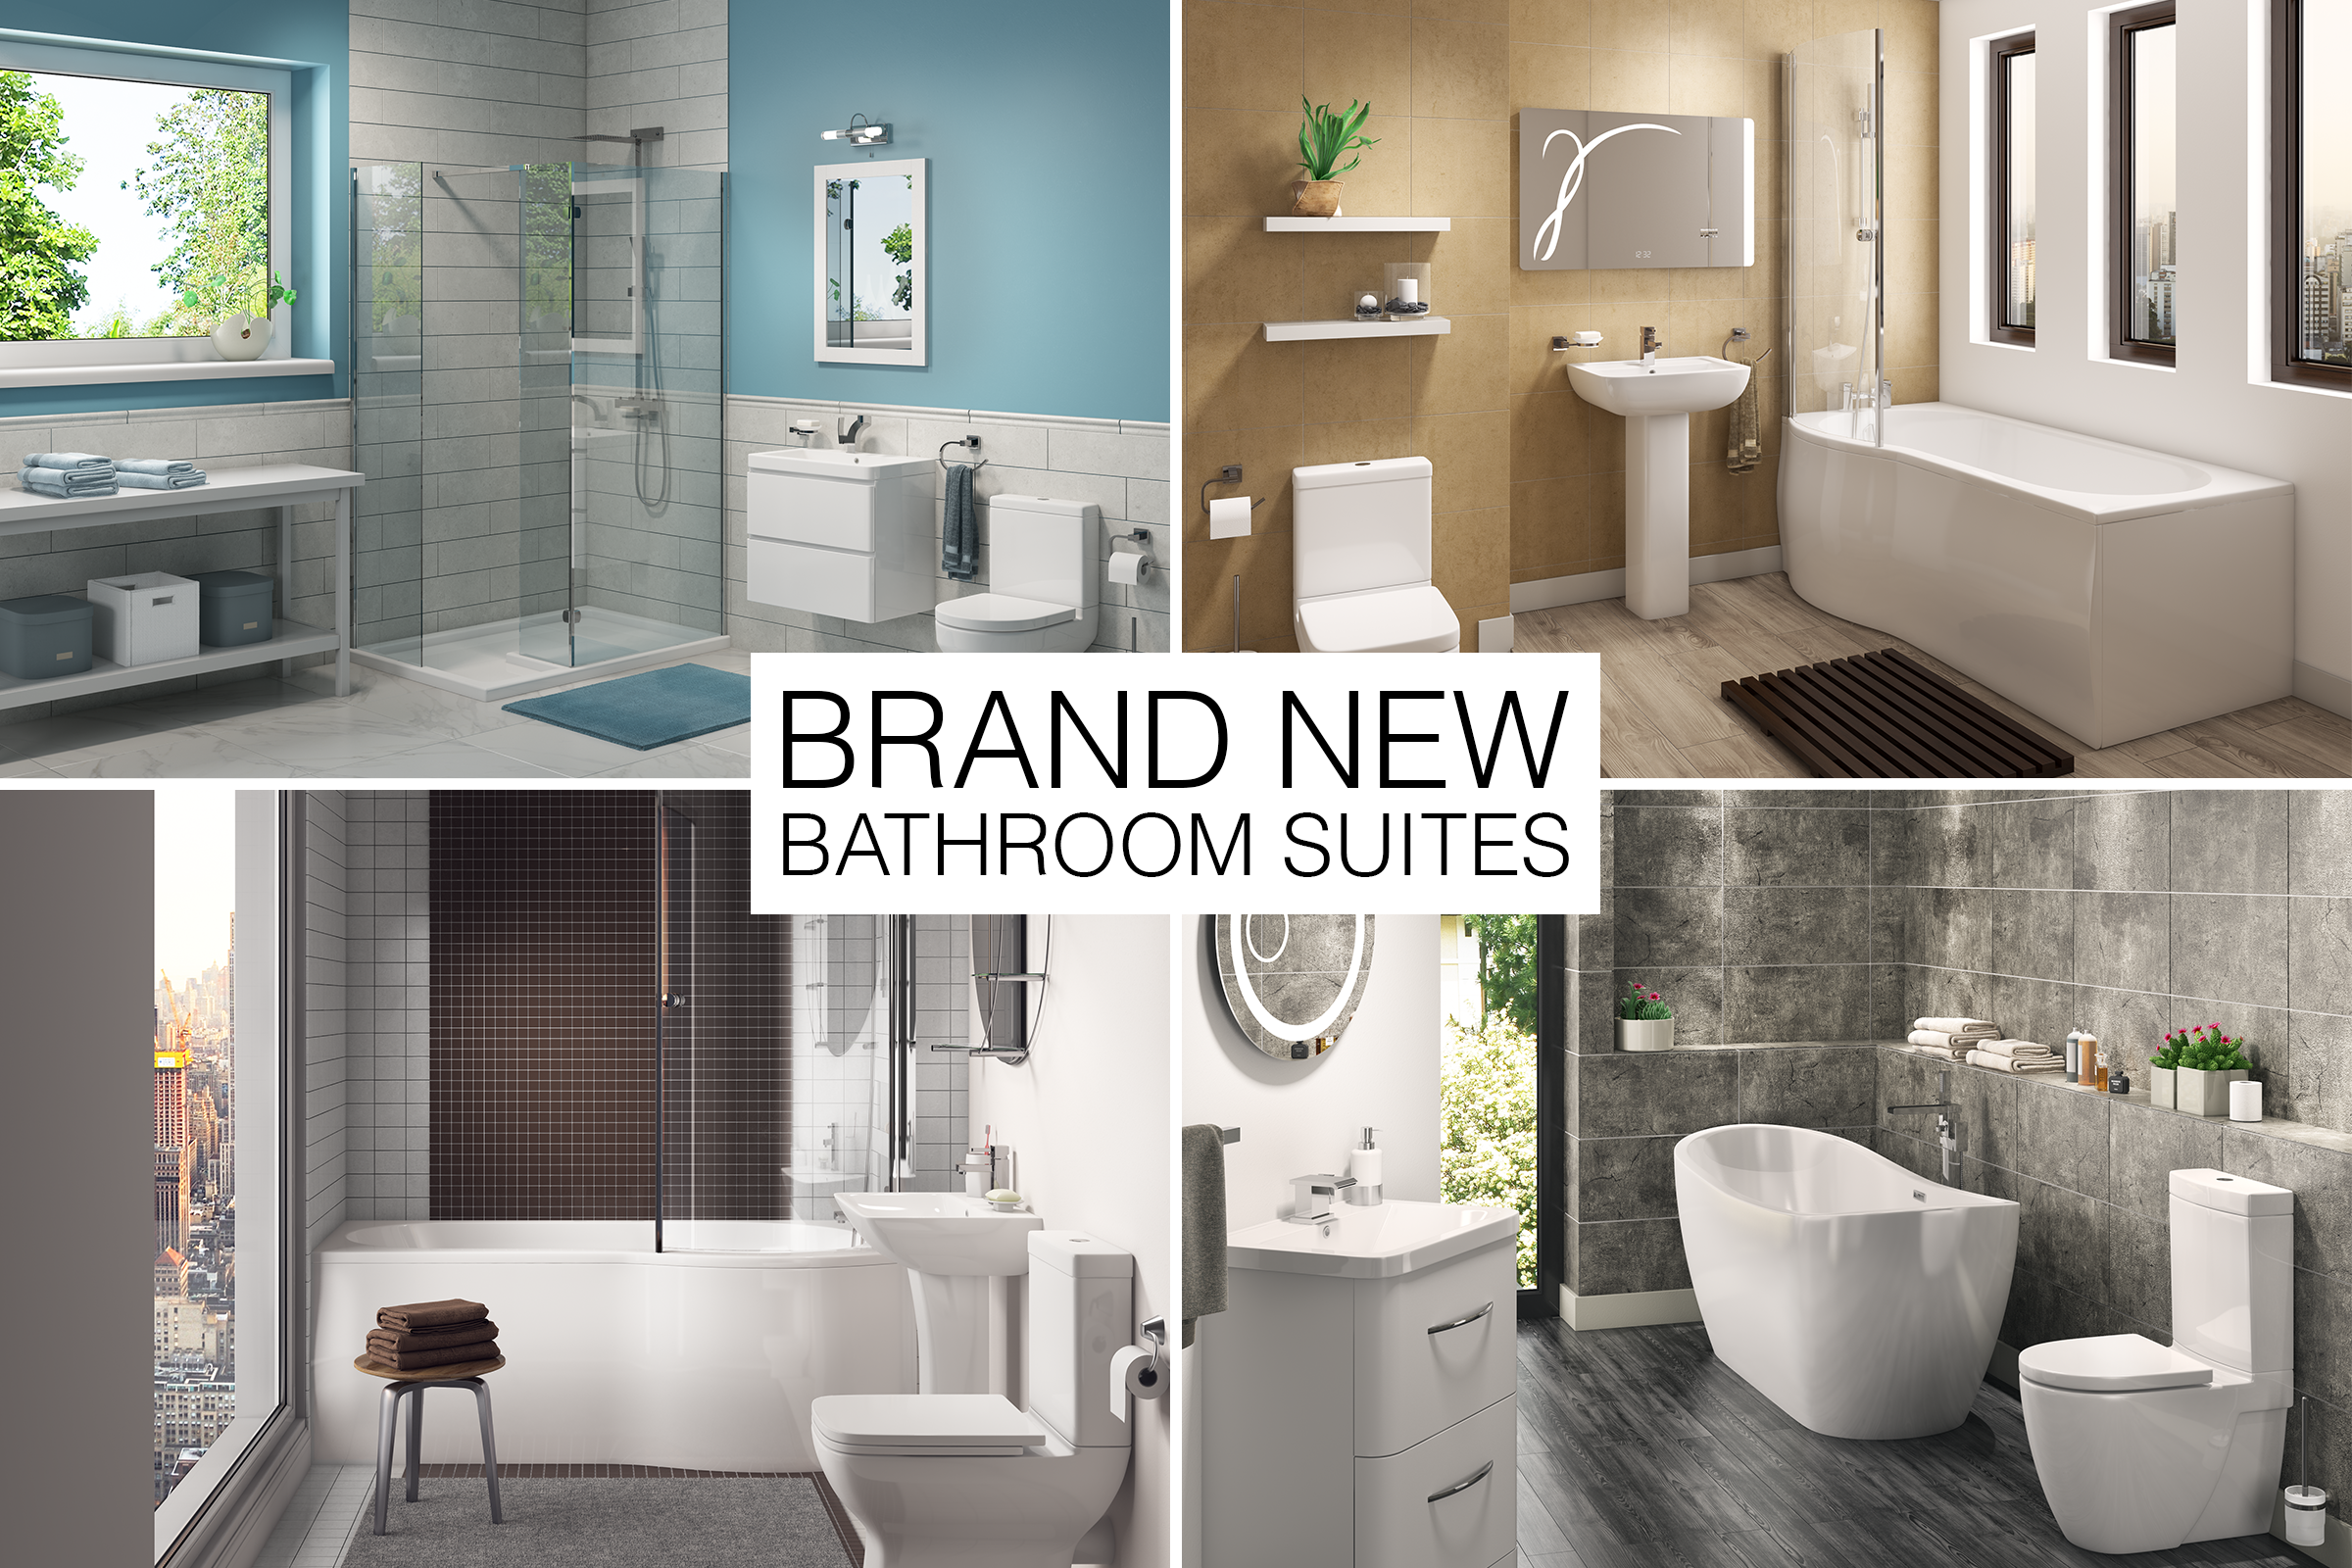 New Bathroom Suites: The London Collection - Bathroom Interior PNG